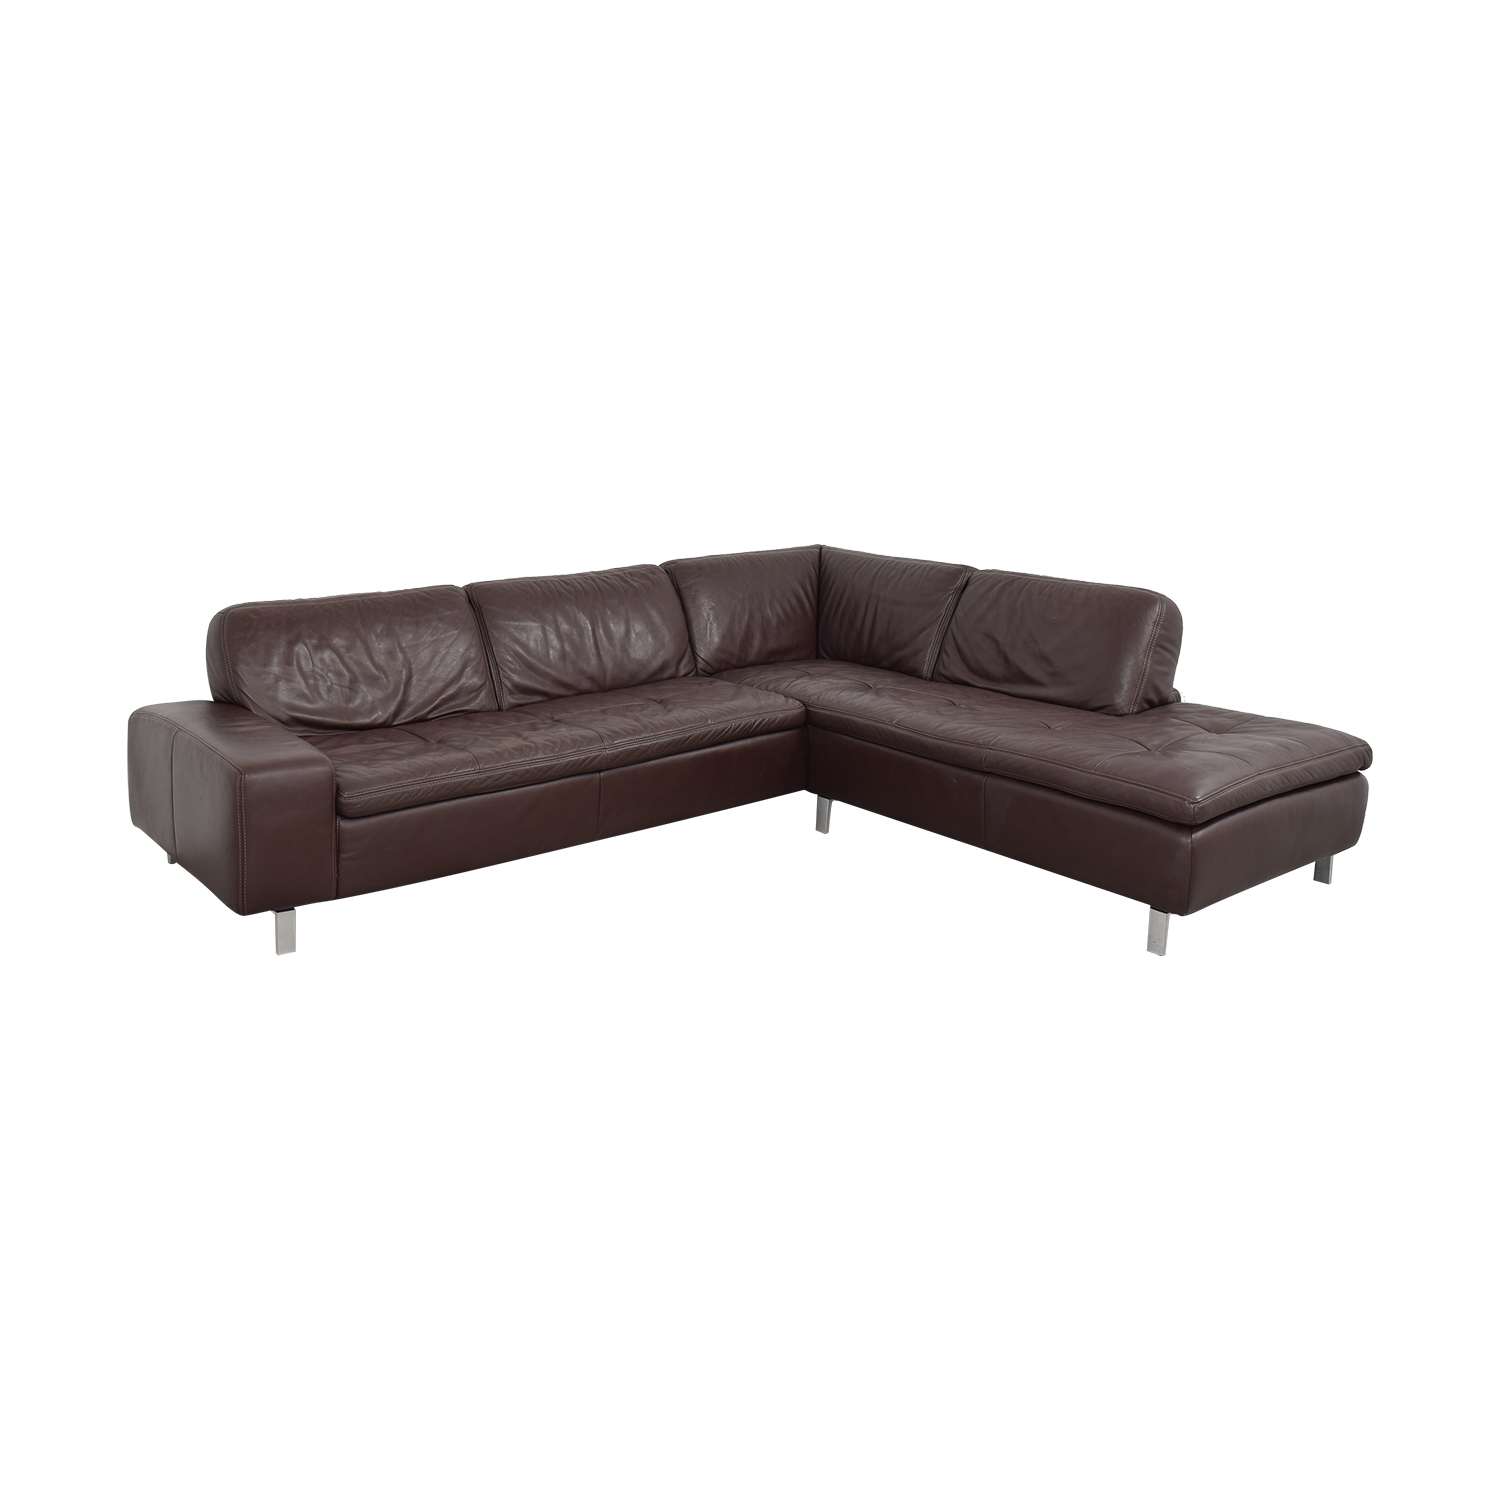 Bloomingdale's Bloomingdale's Sectional Sofa with Chaise and Ottomans second hand